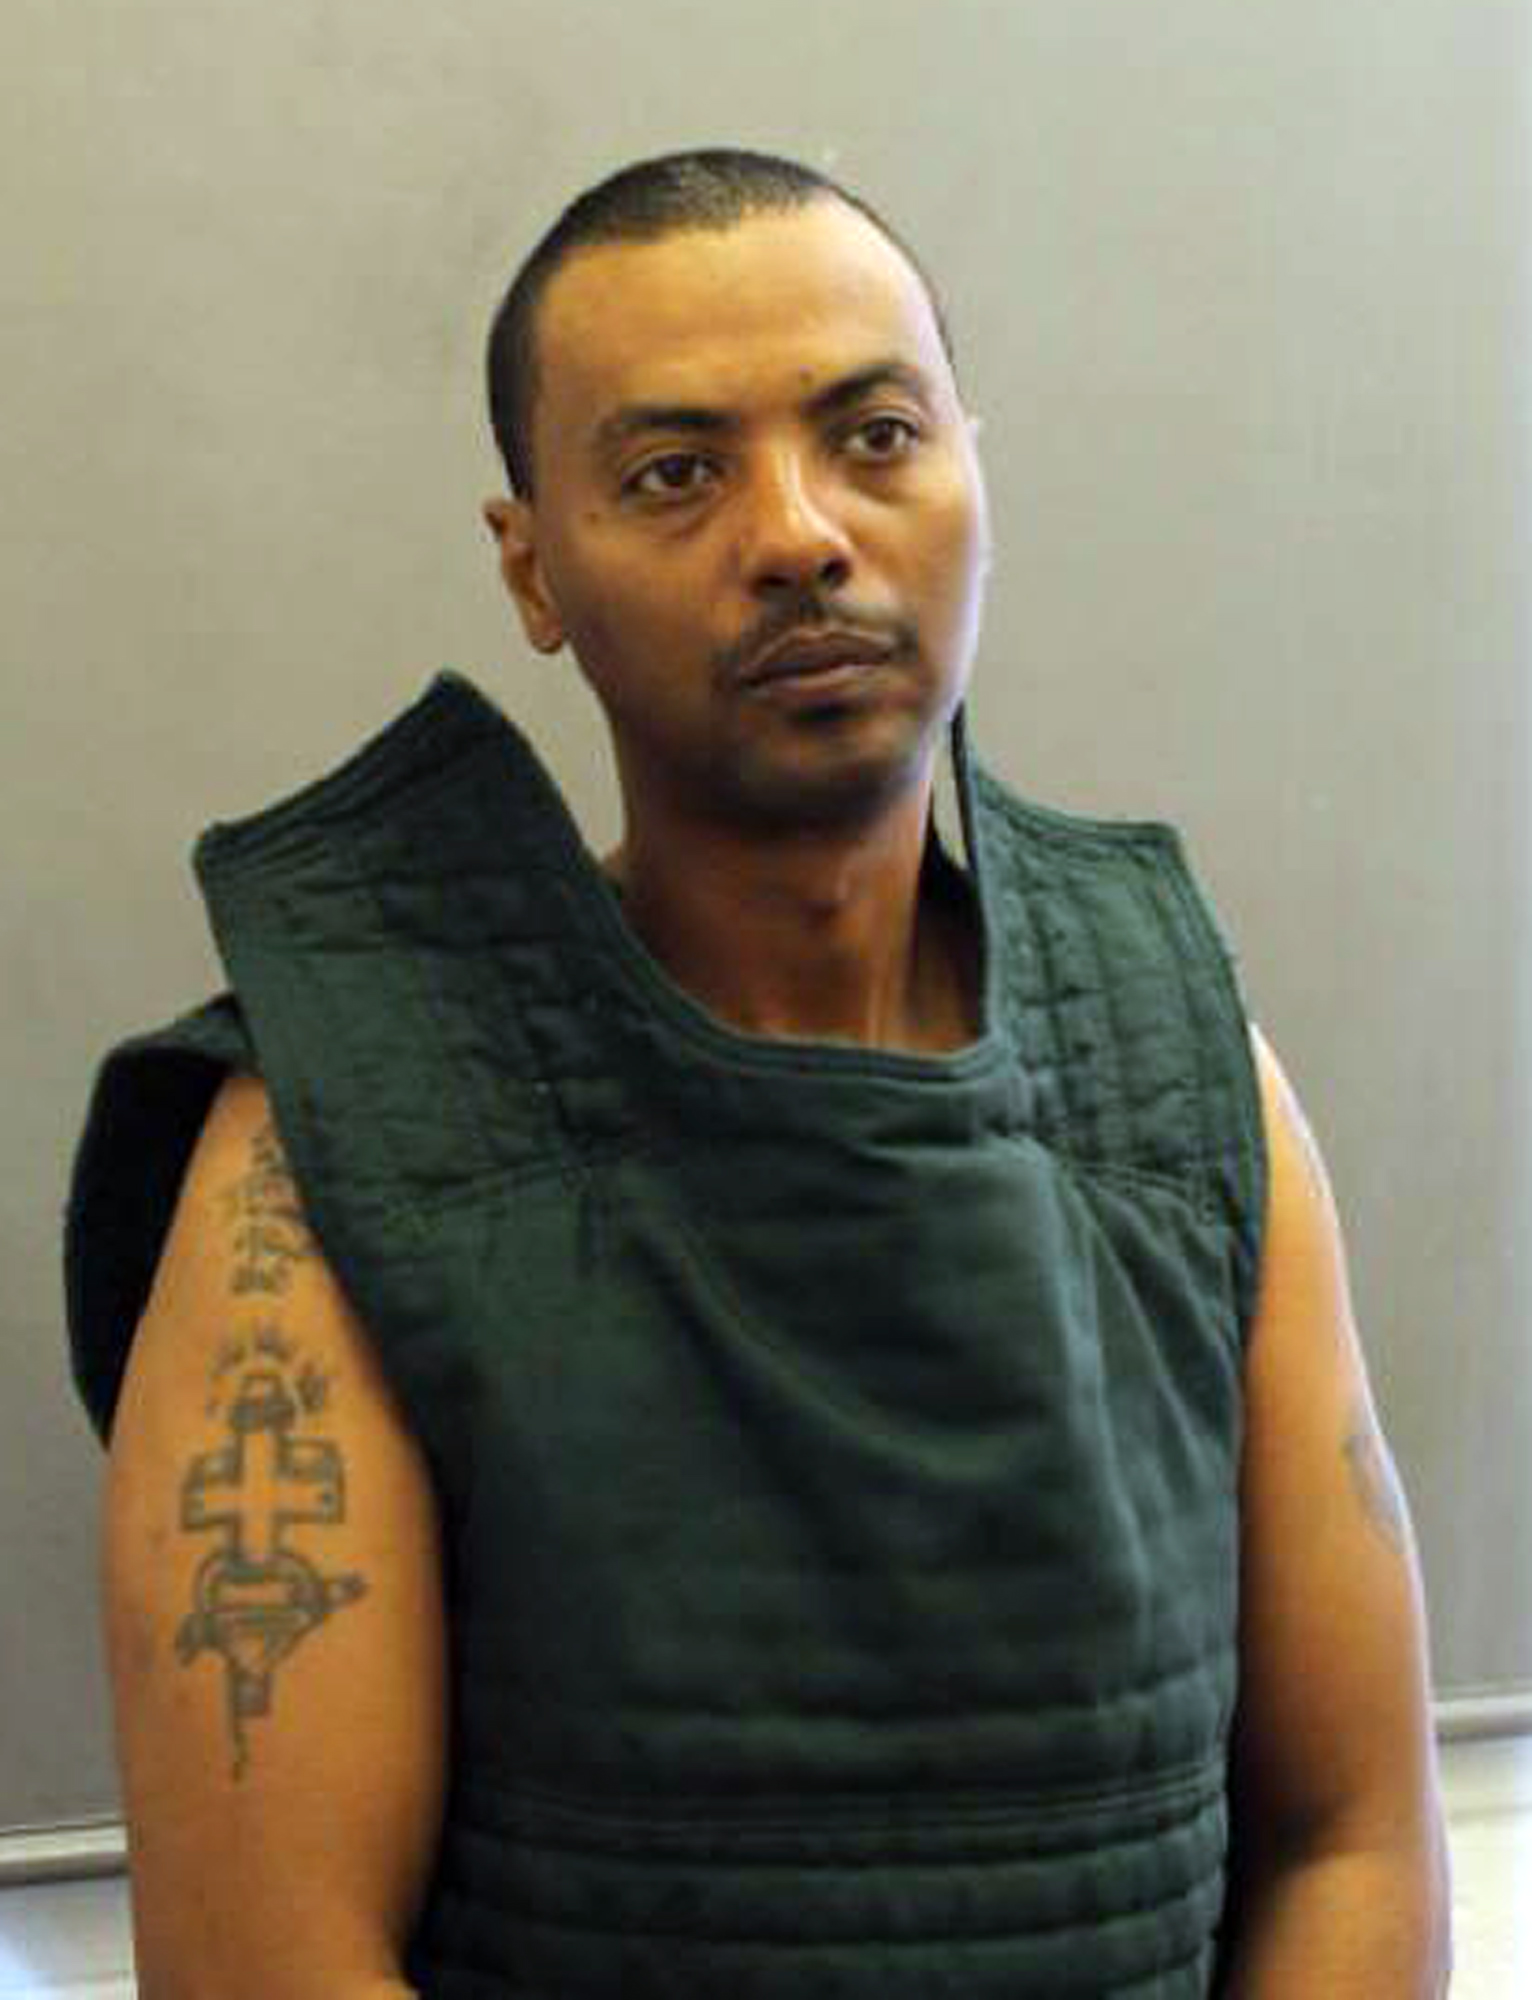 Bank robber who led manhunt in Va., D.C. sentenced